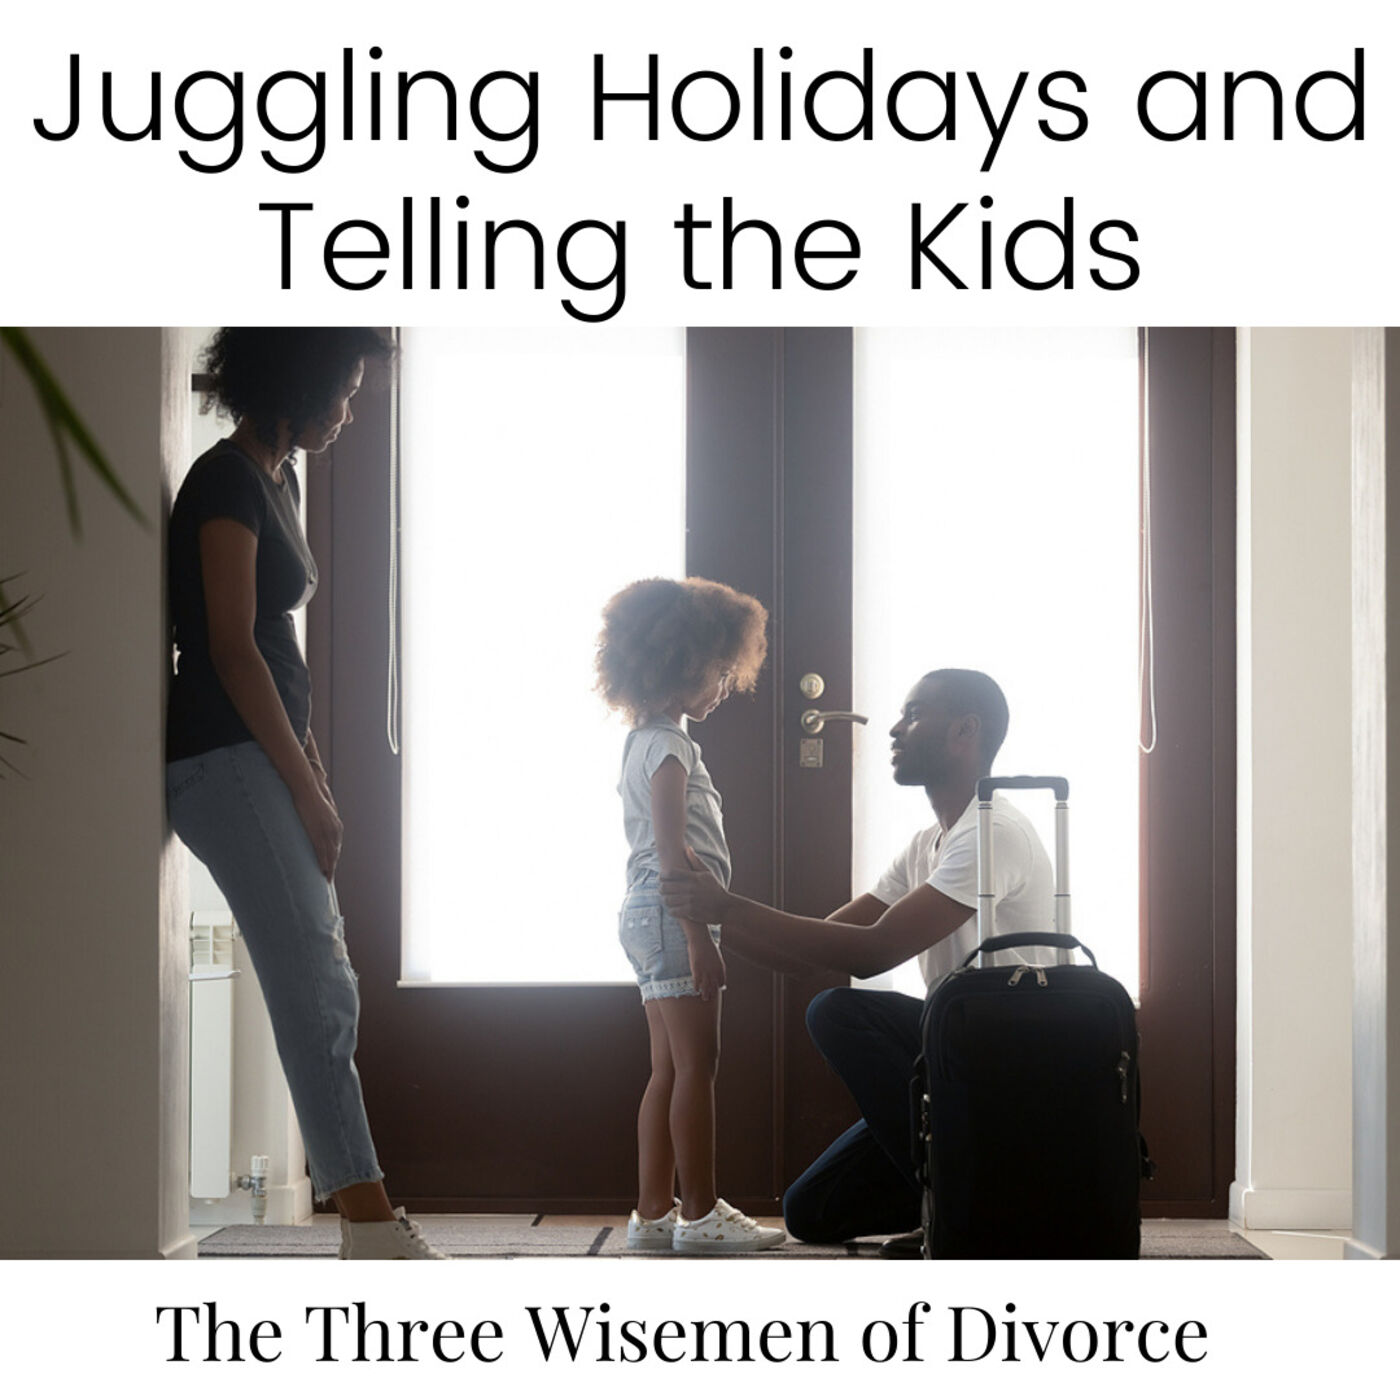 Juggling Holidays and Telling the Kids about the Divorce